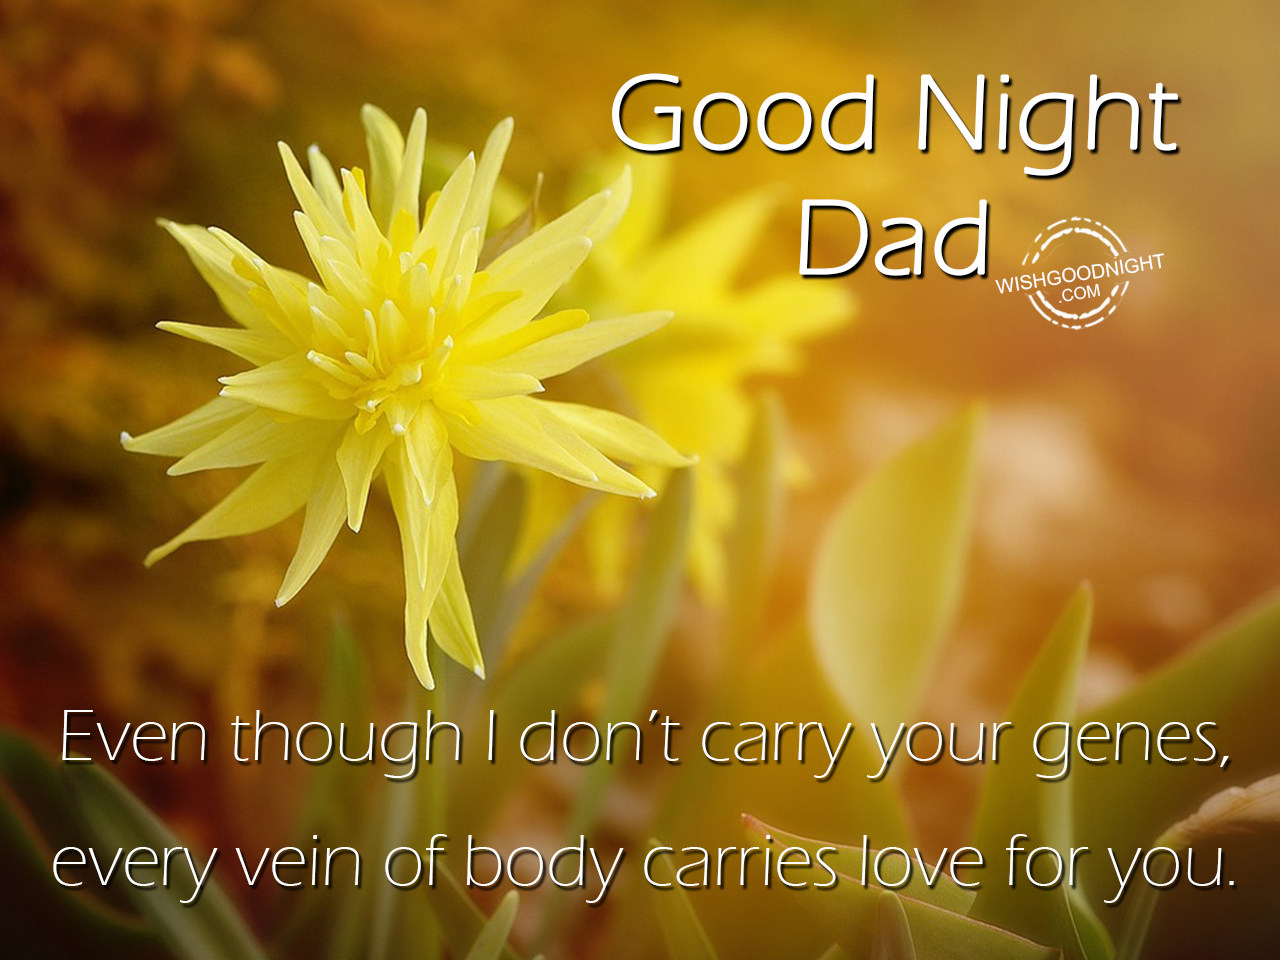 Every vein of body carries love for you – Good Night Dad - Good